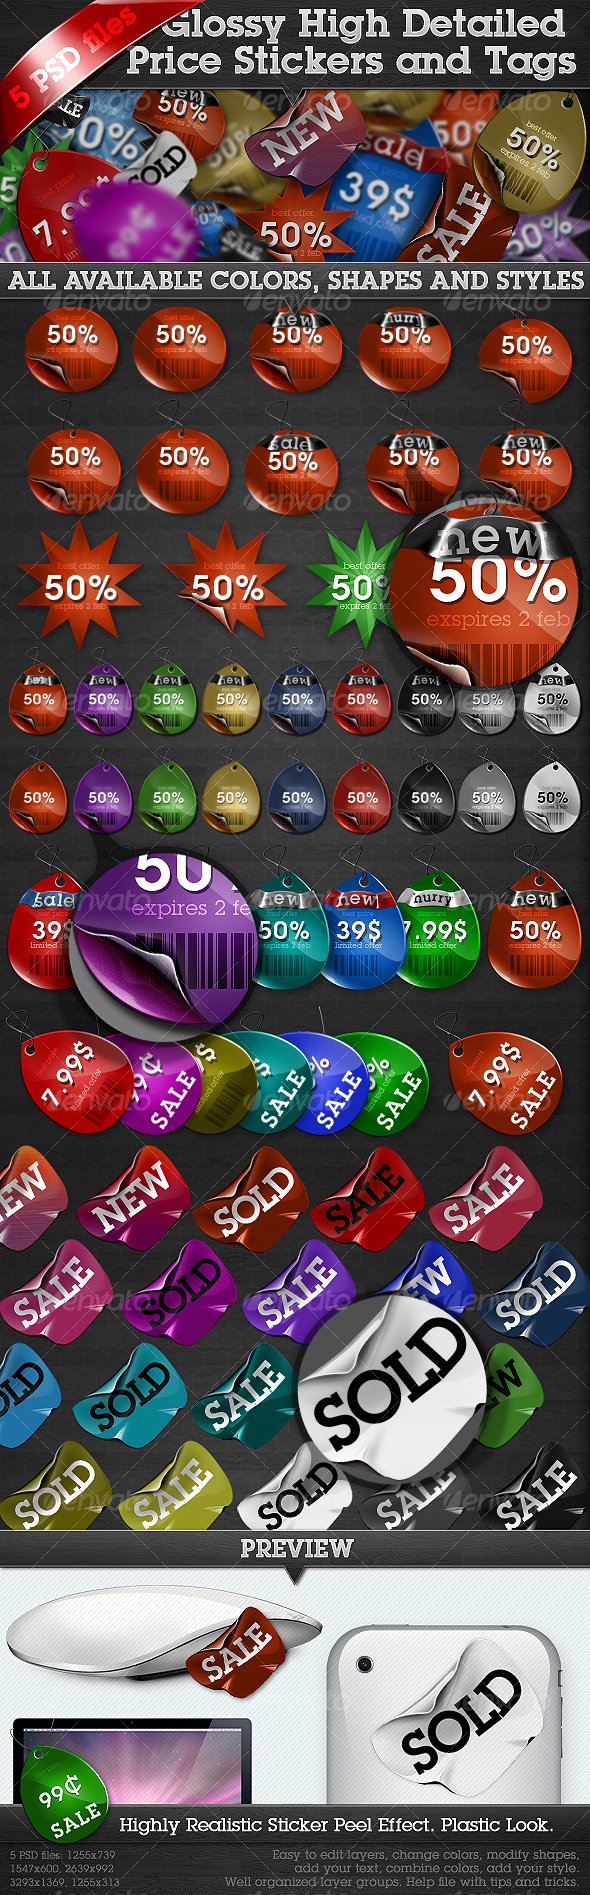 Glossy High Detailed Price Stickers and Tags - Miscellaneous Web Elements